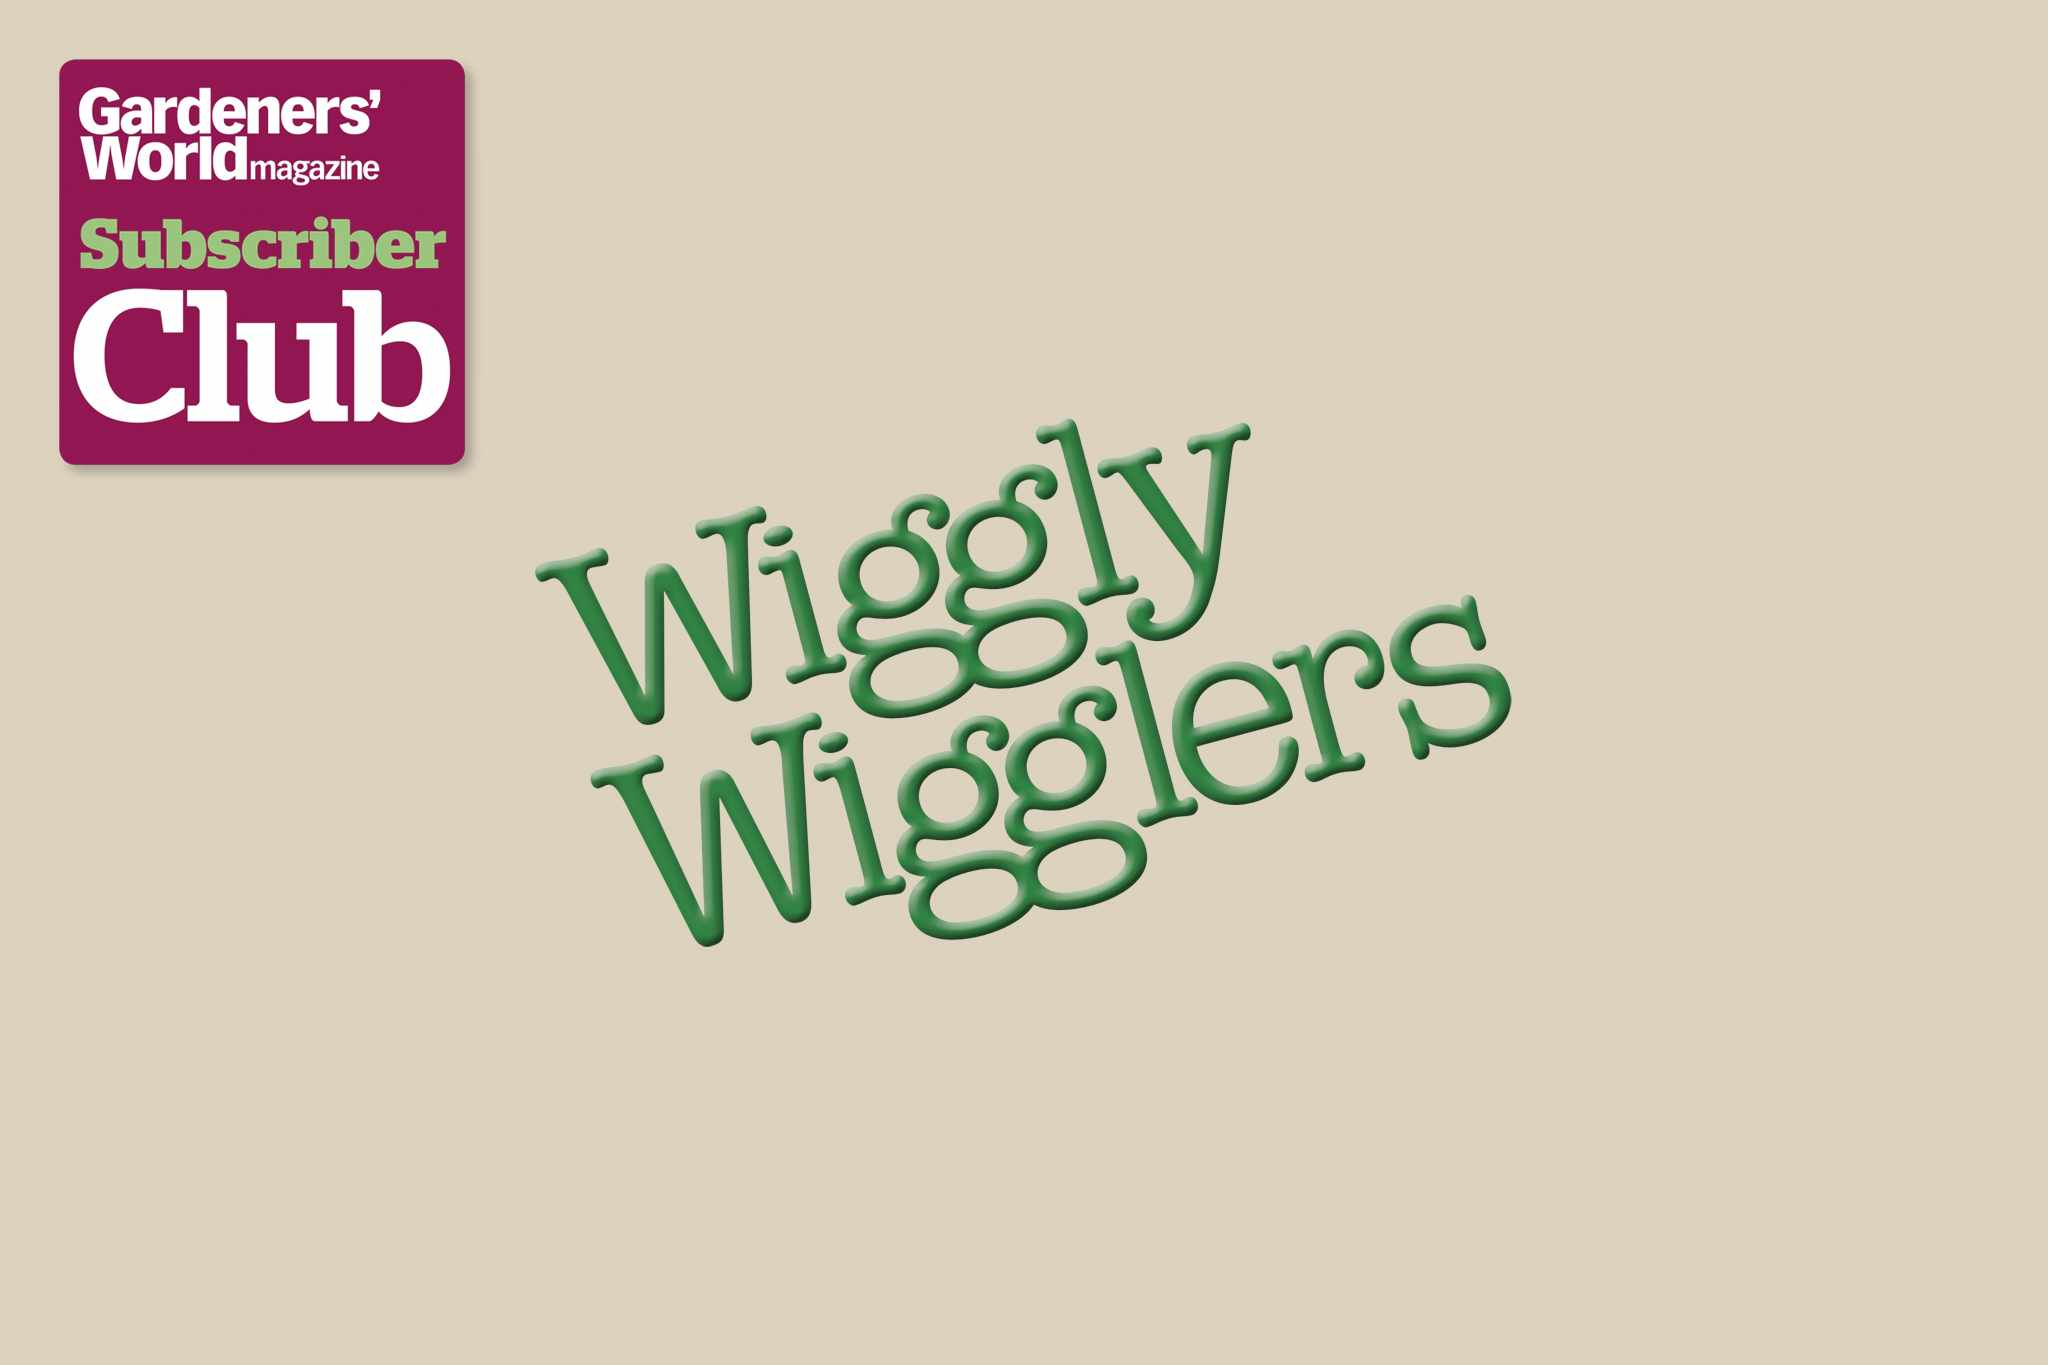 Wiggly WigglersGarden Bird Supplies BBC Gardeners' World Magazine Subscriber Club discount